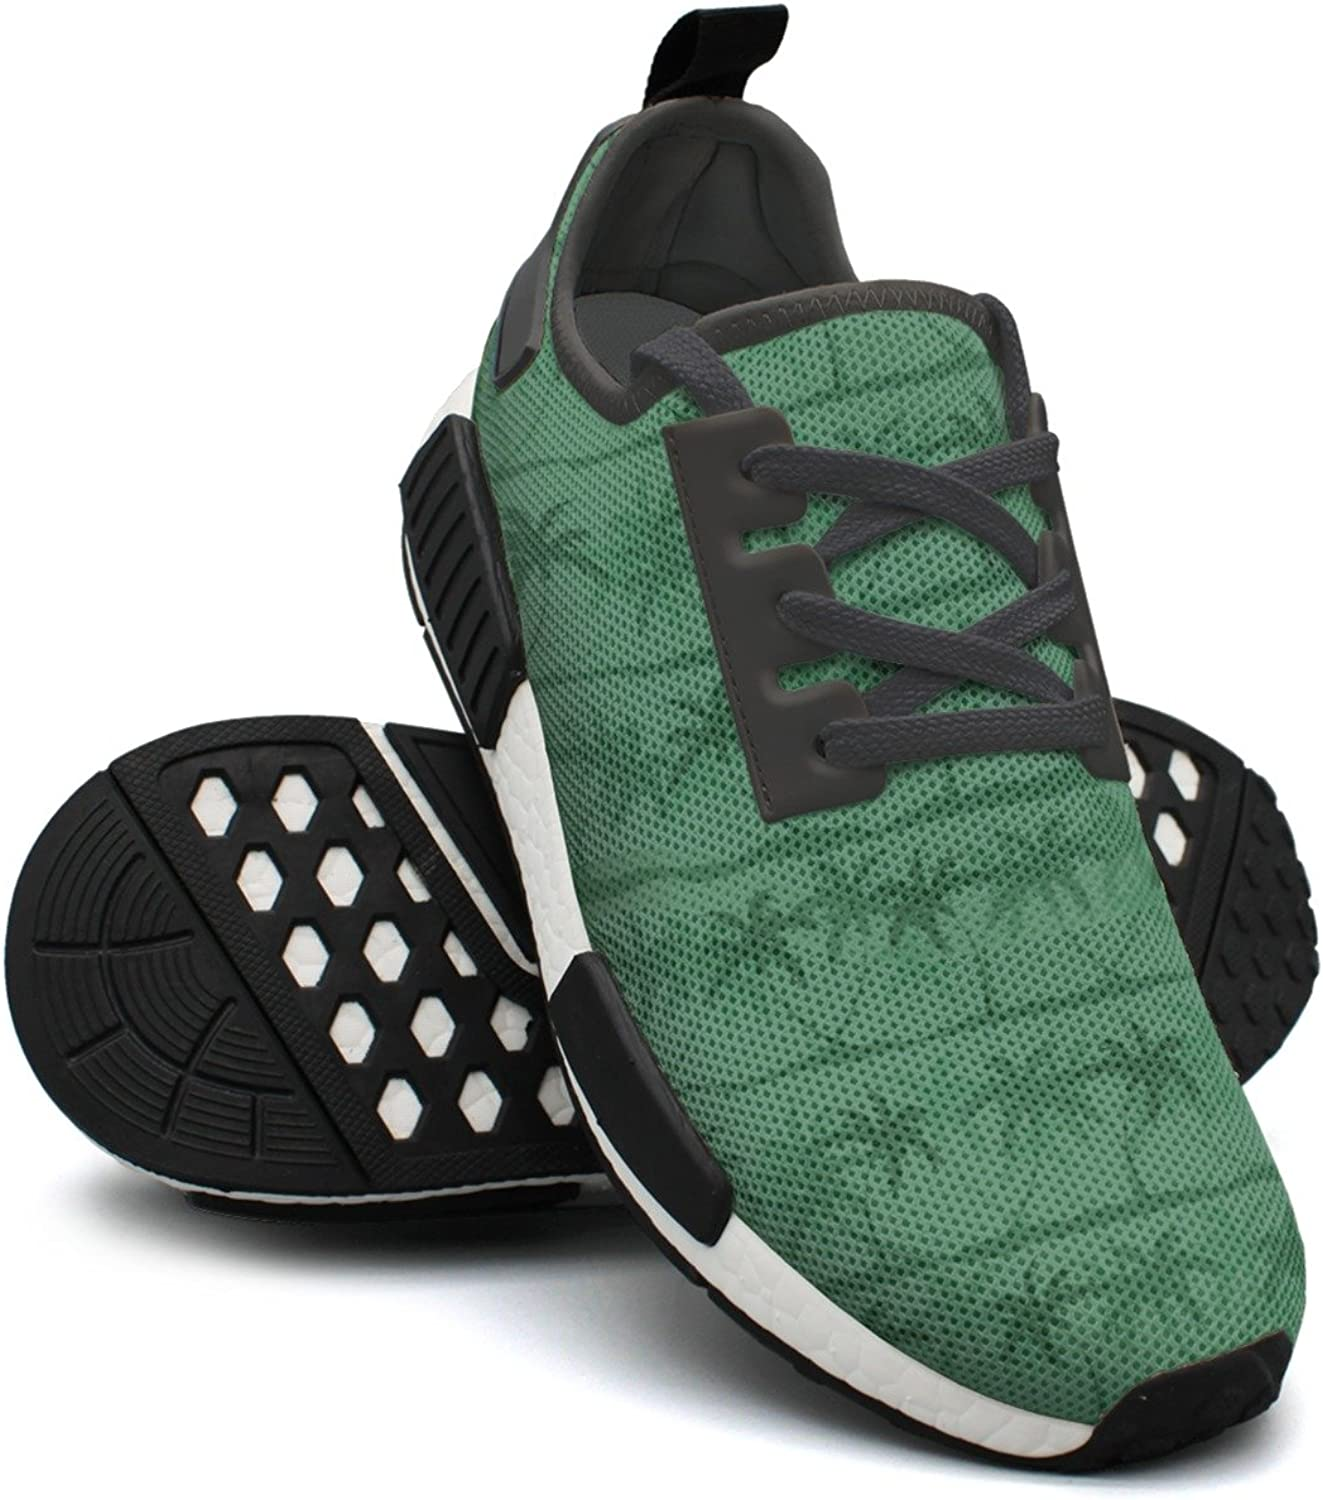 Windmill Palm Tree Ladies Running shoes Nmd Sports shoes Wide